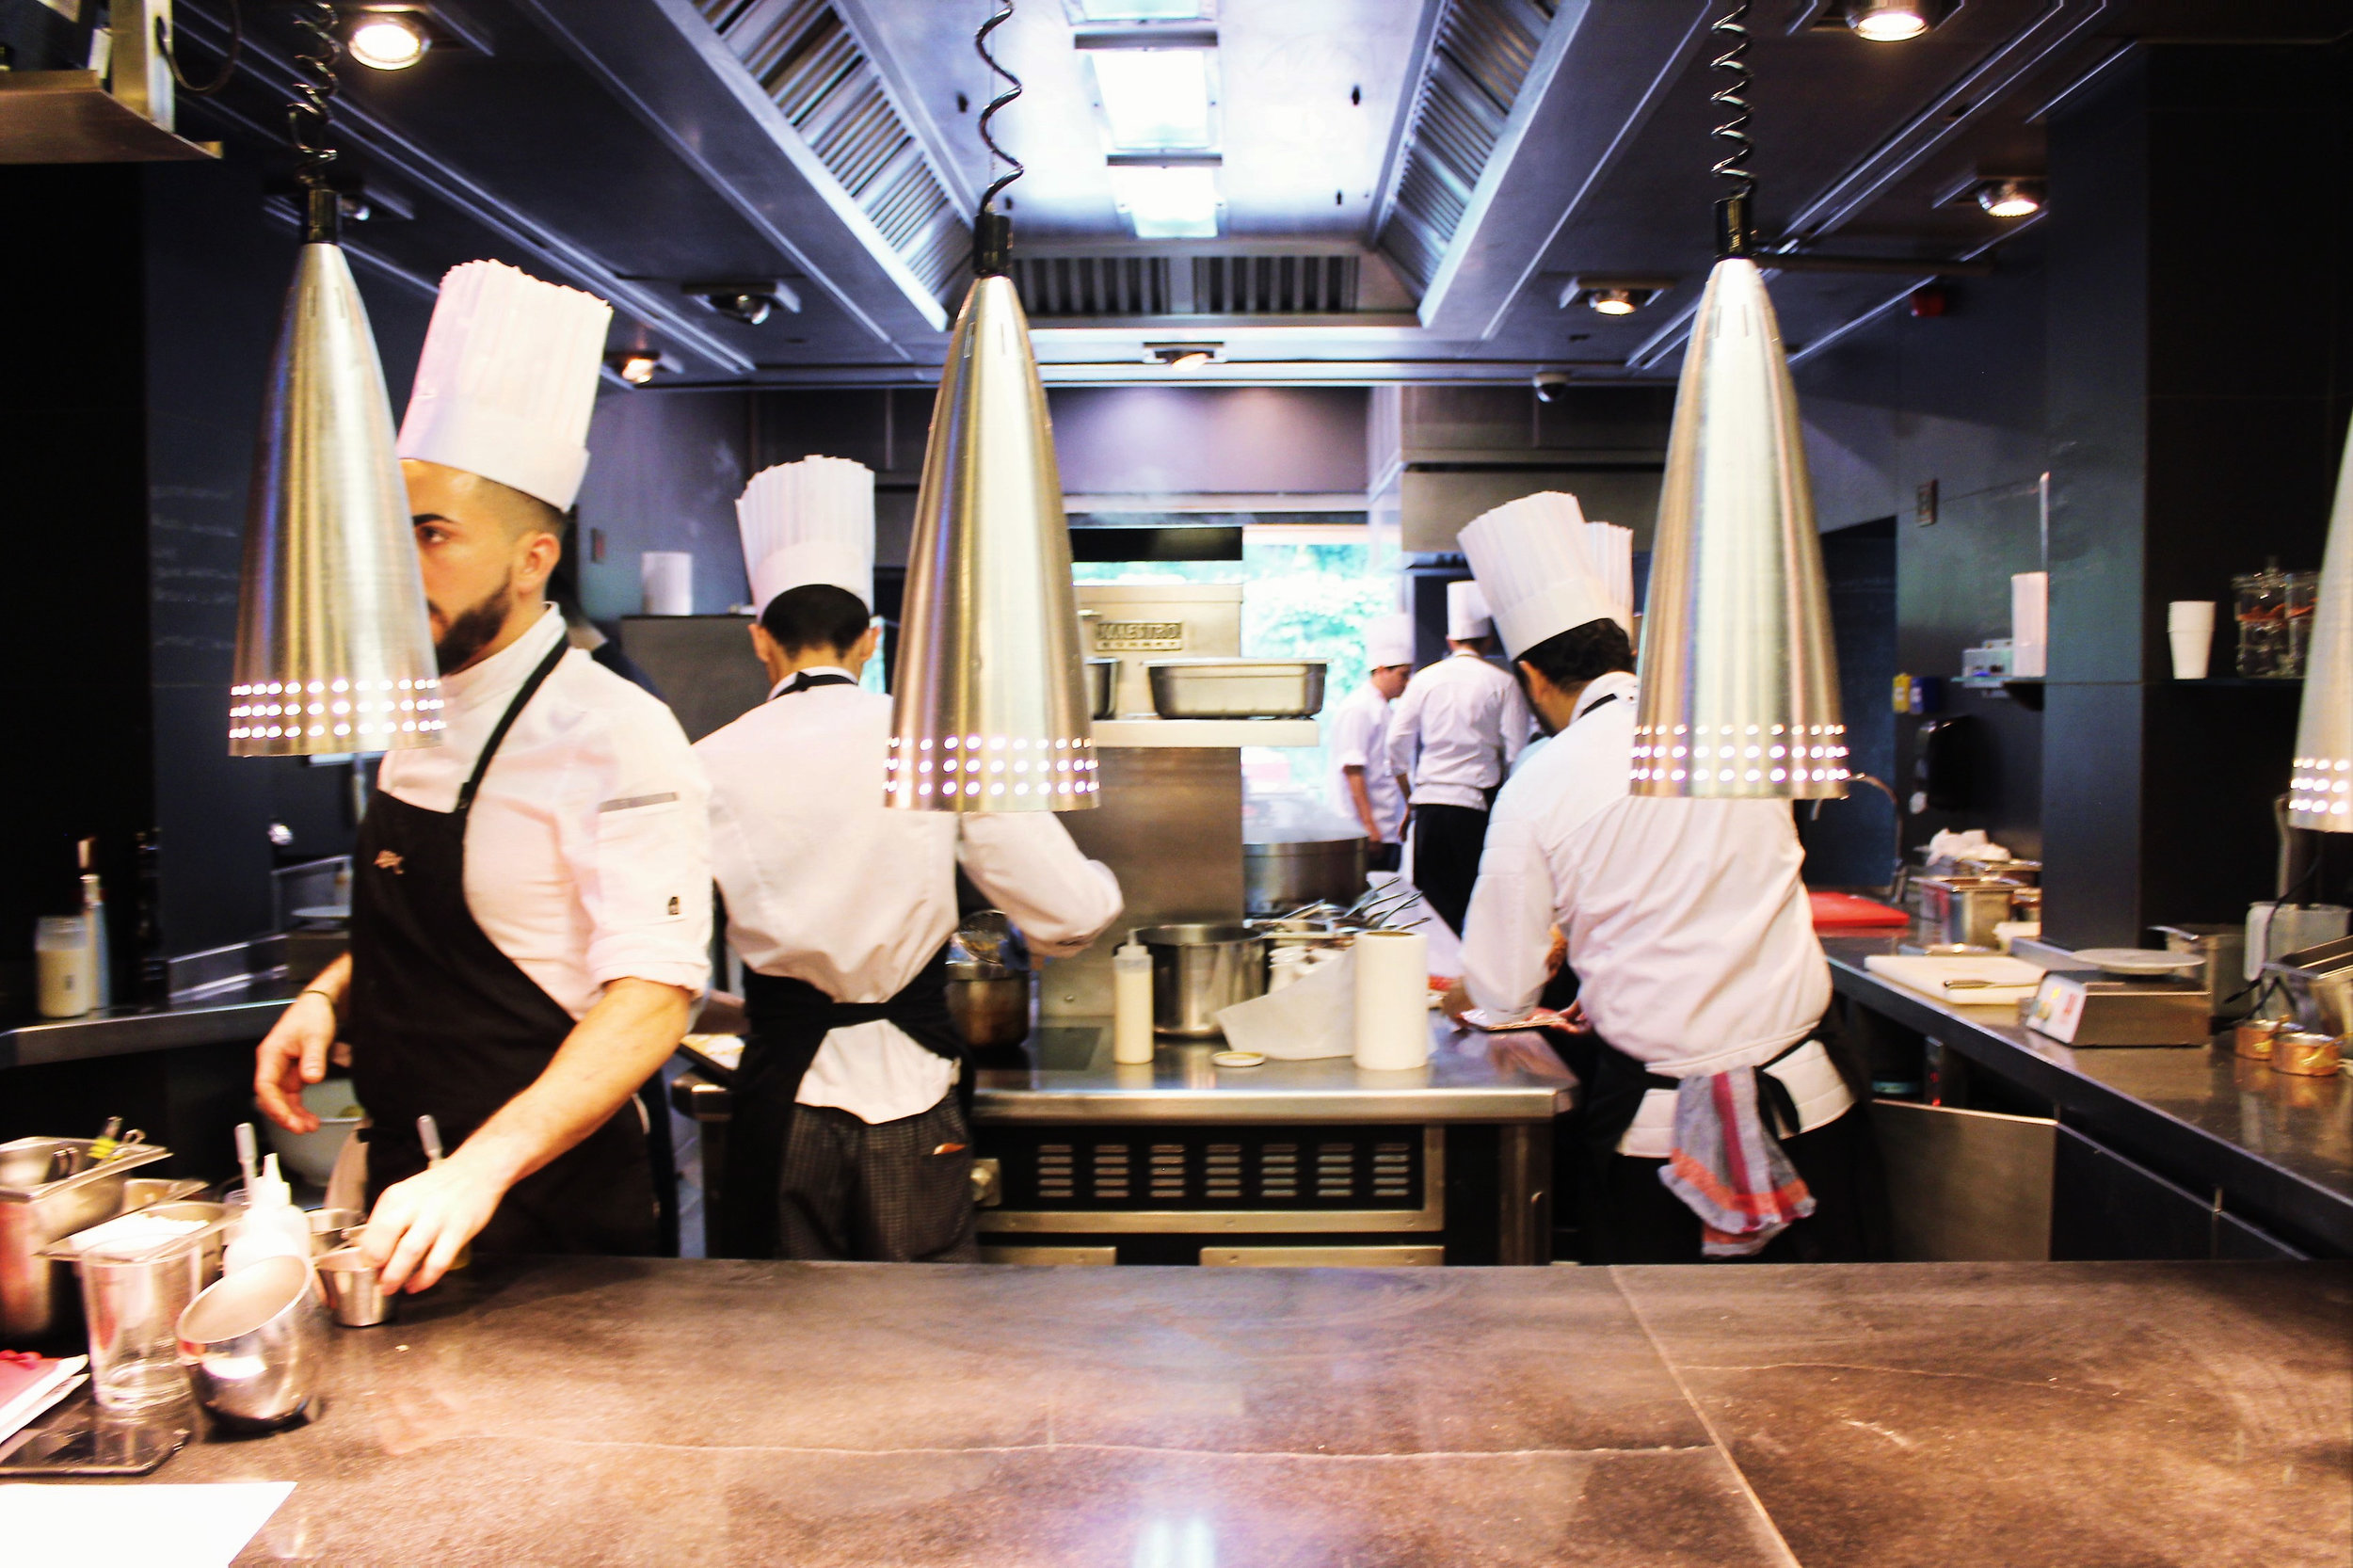 The kitchen at ABaC Restaurante in Barcelona